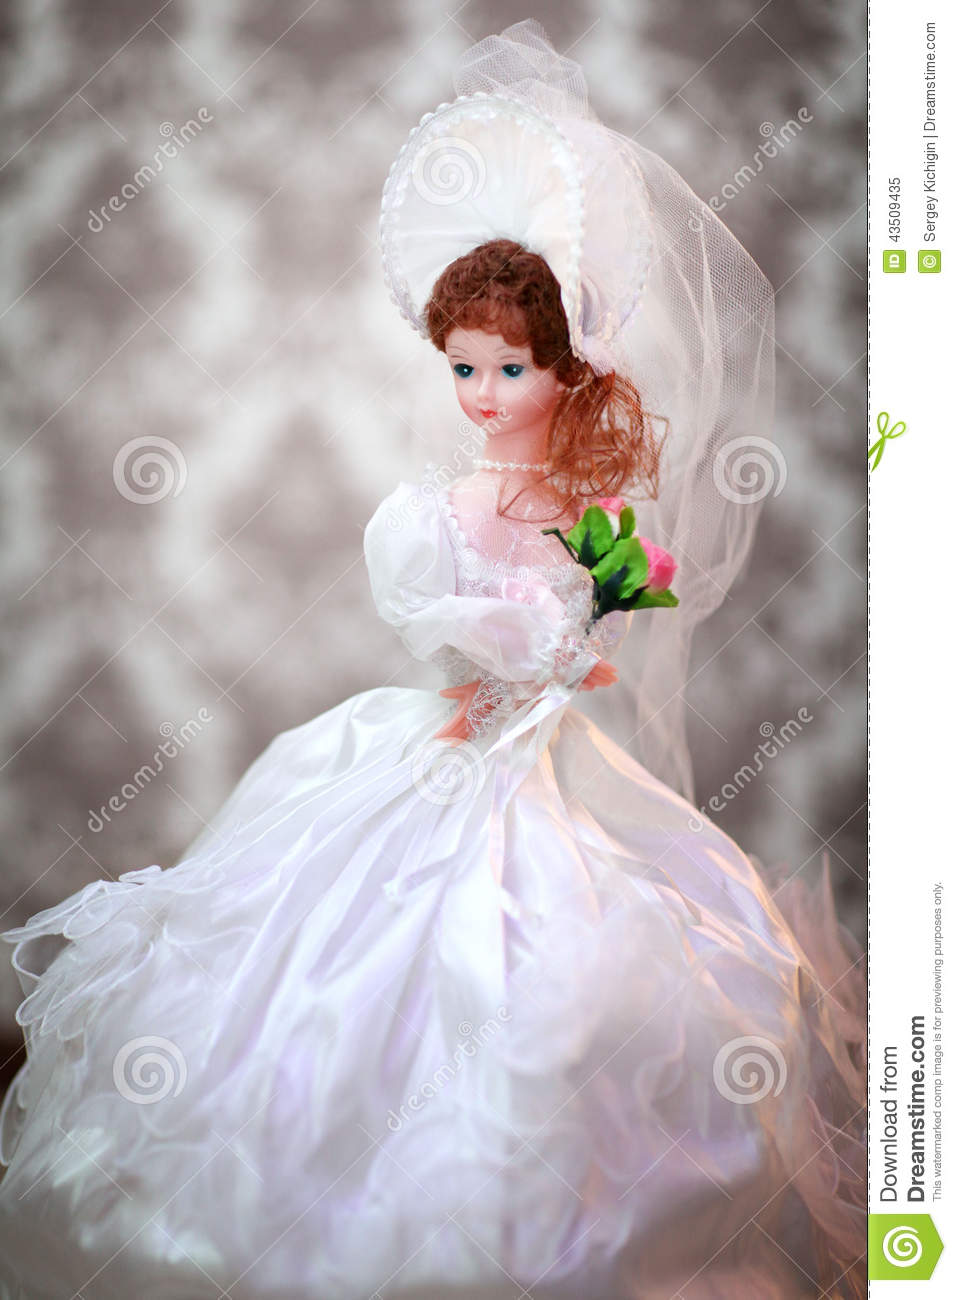 Cute Dolls Wallpapers With Quotes Beautiful Doll Bride In A Wedding Dress Stock Image